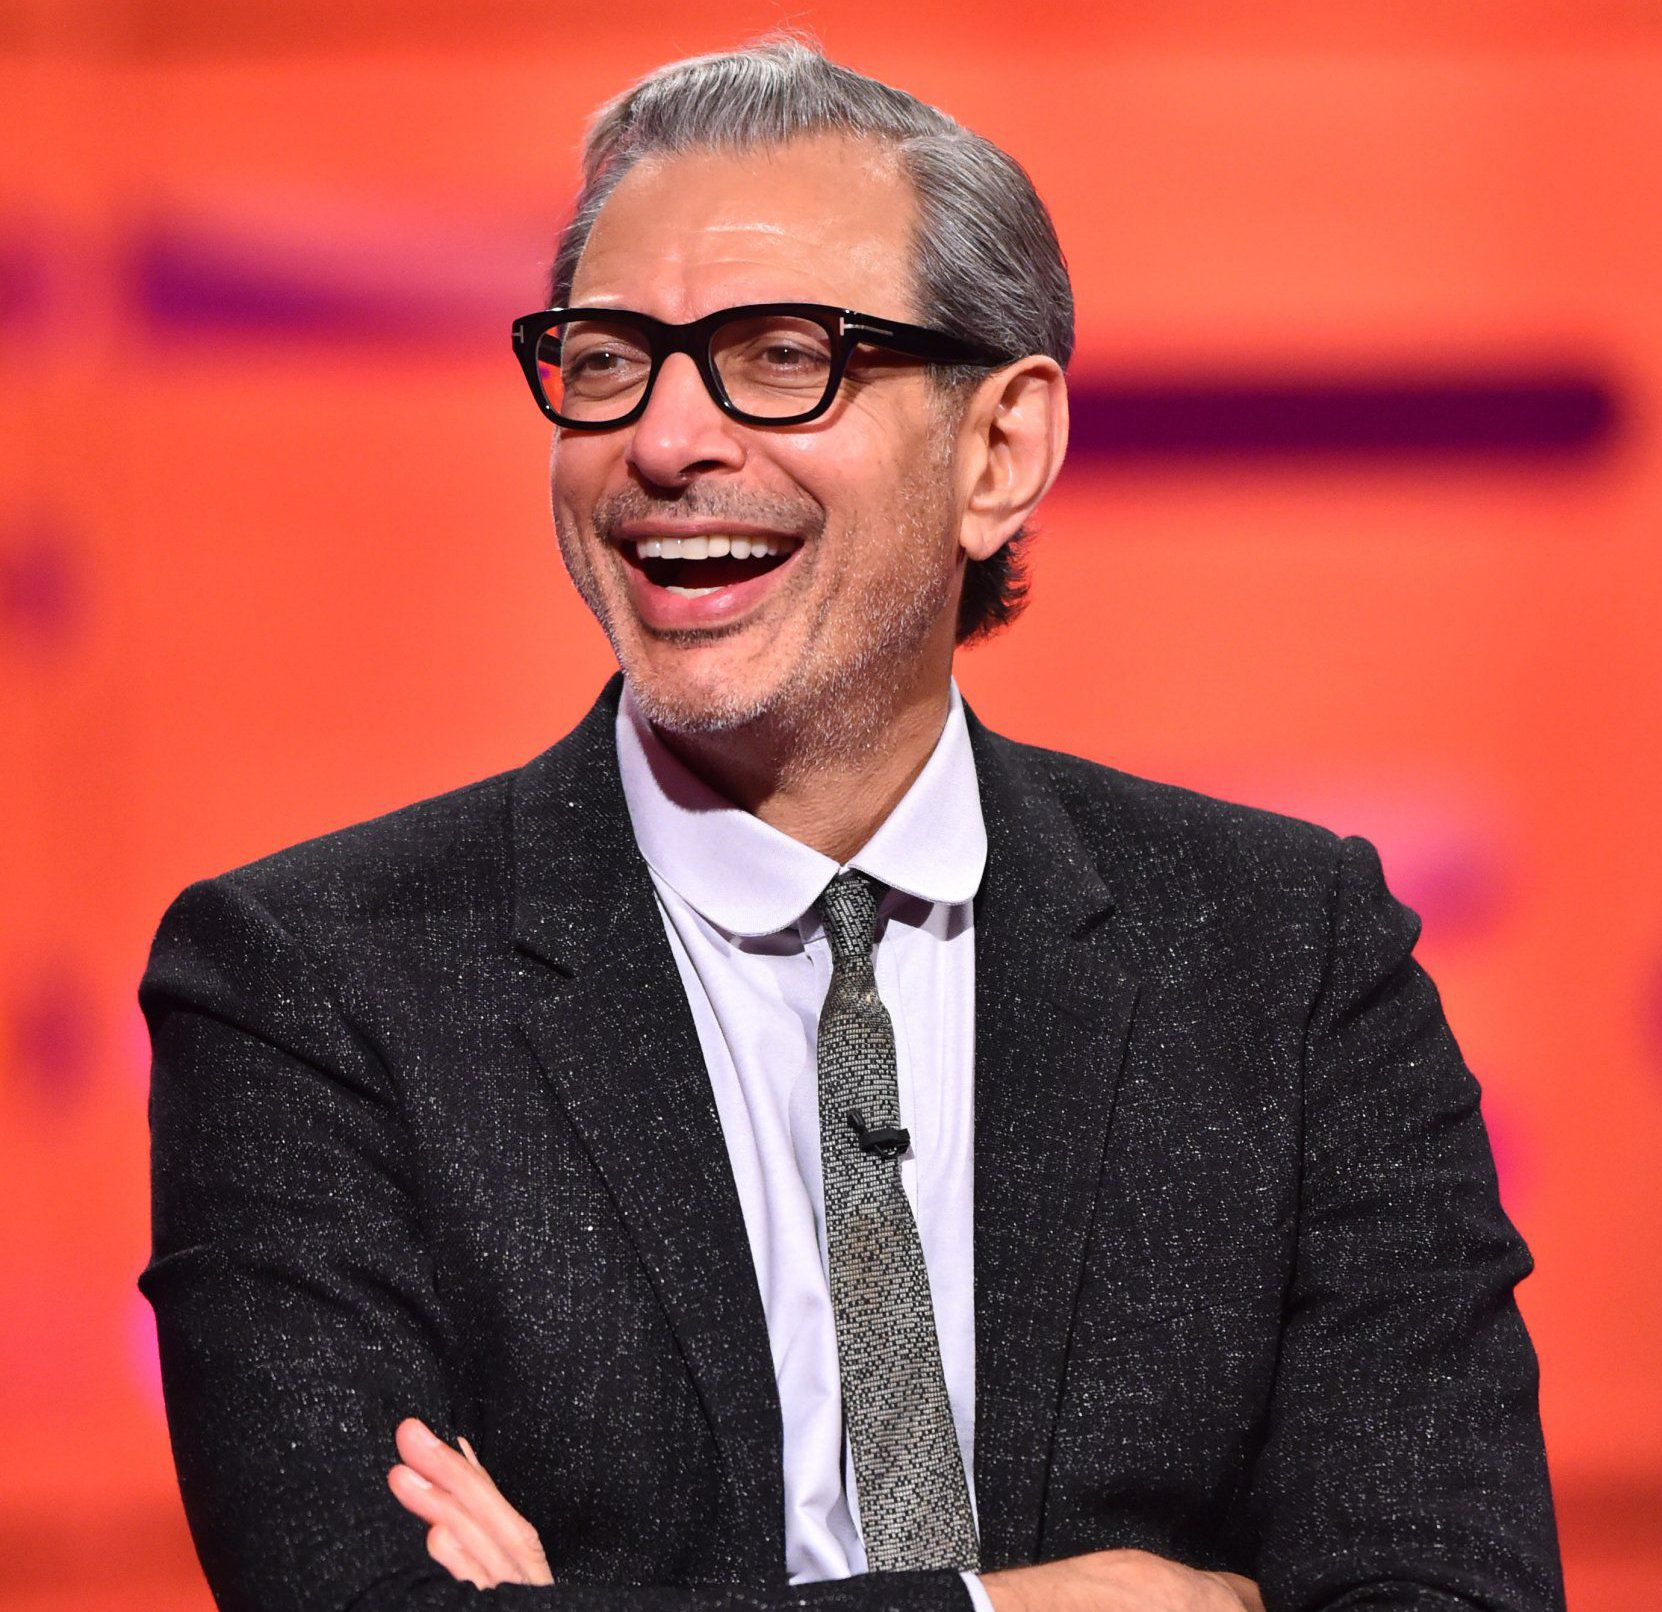 It looks like Jeff Goldblum won't be in Jurassic World 2 after all